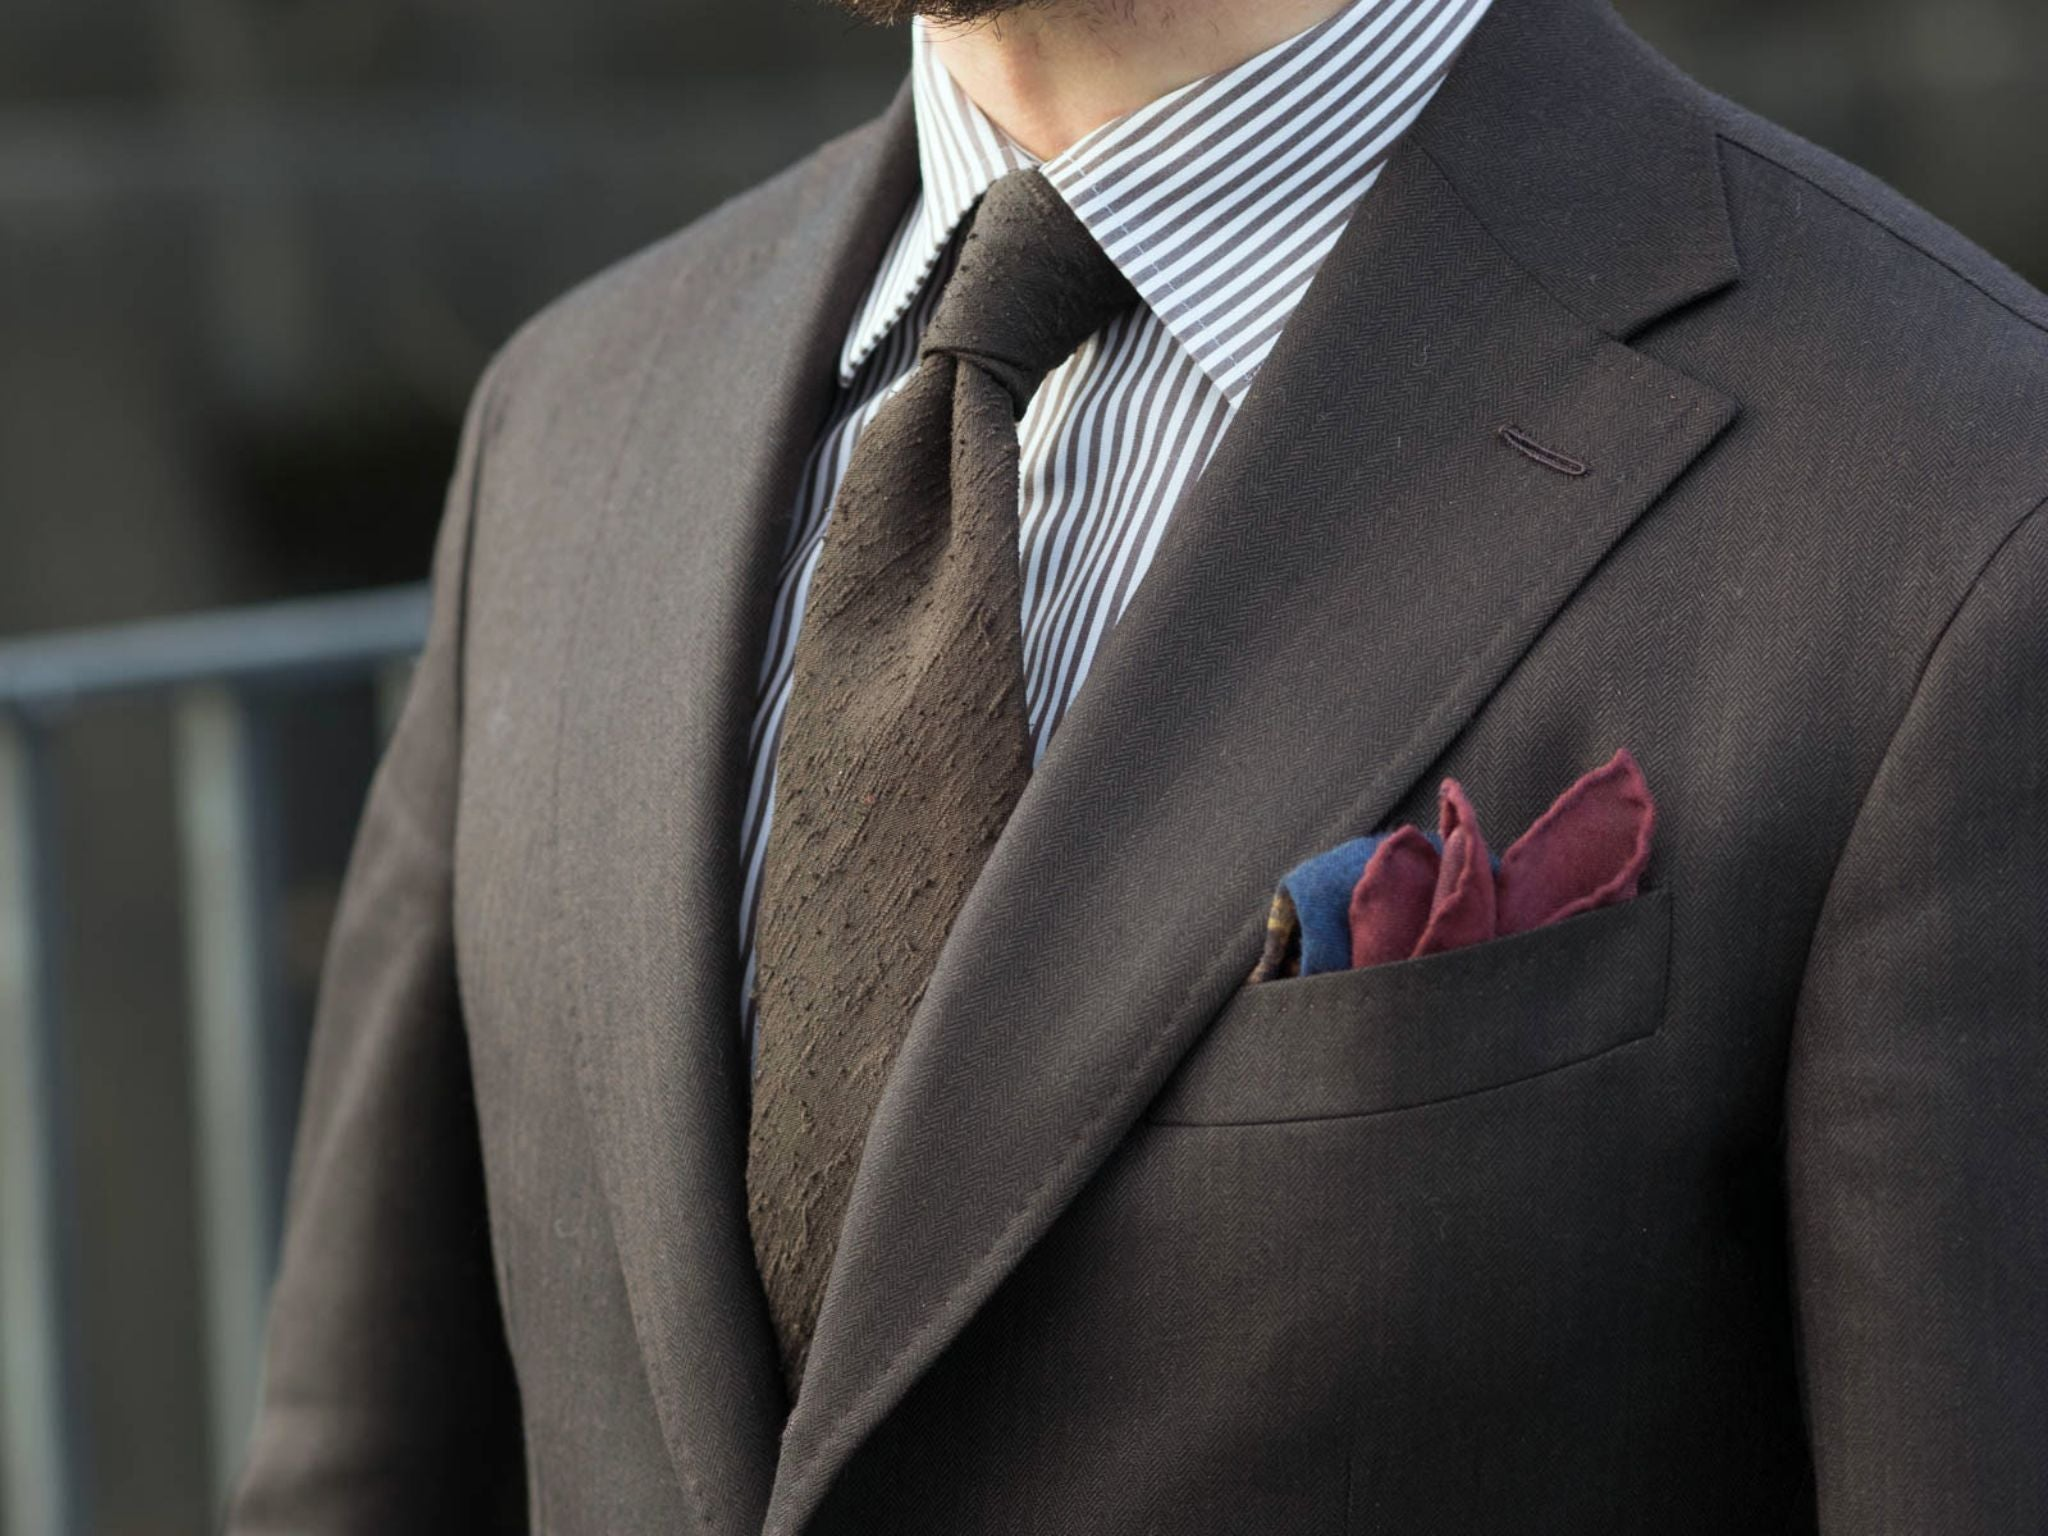 Pitti Uomo 91 DLA look book preview - brown shantung silk tie with the Symposium pocket square